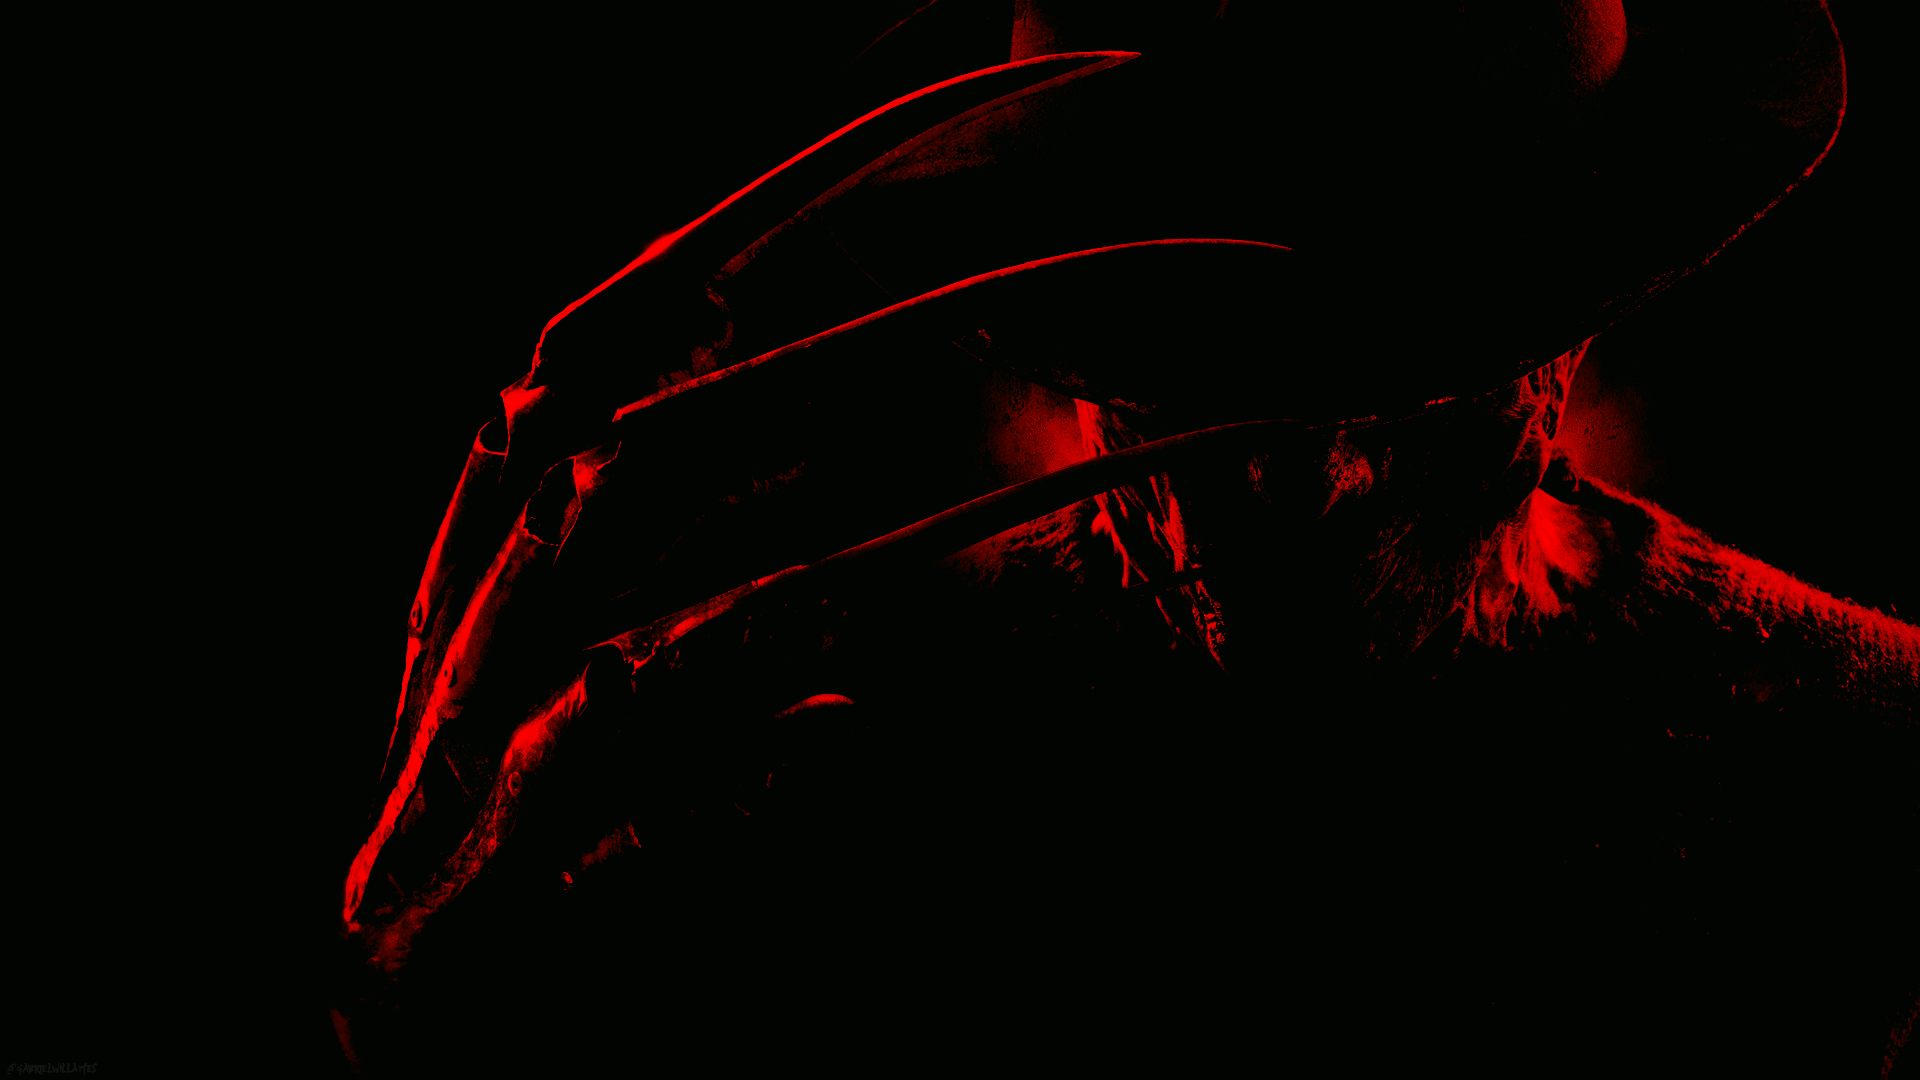 Freddy Krueger Nightmare Full HD Wallpaper And Background Image